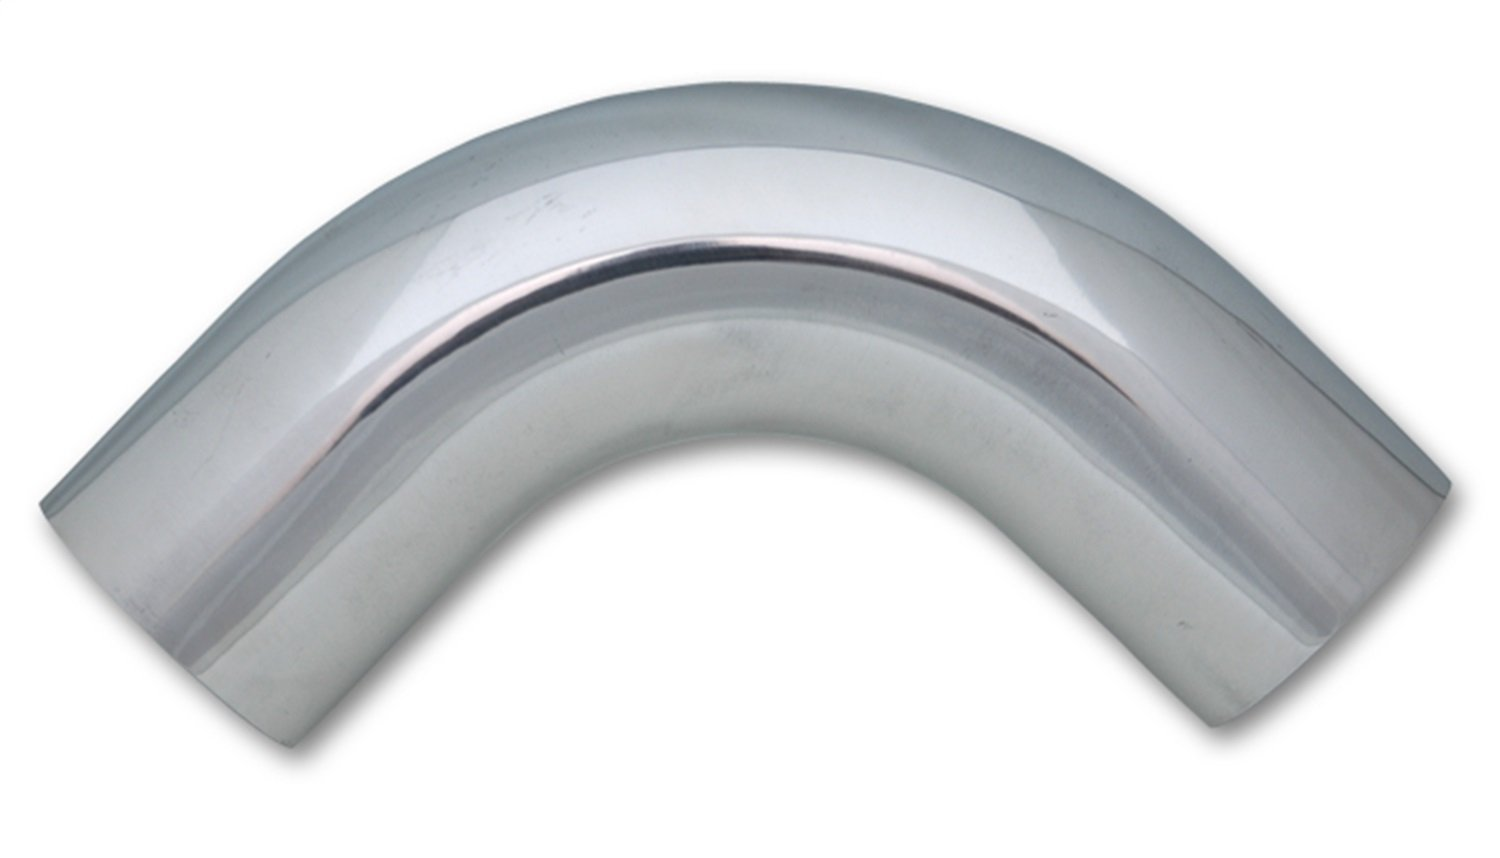 Vibrant 2876 Polished Aluminum 90 Degree Bend VIB2876